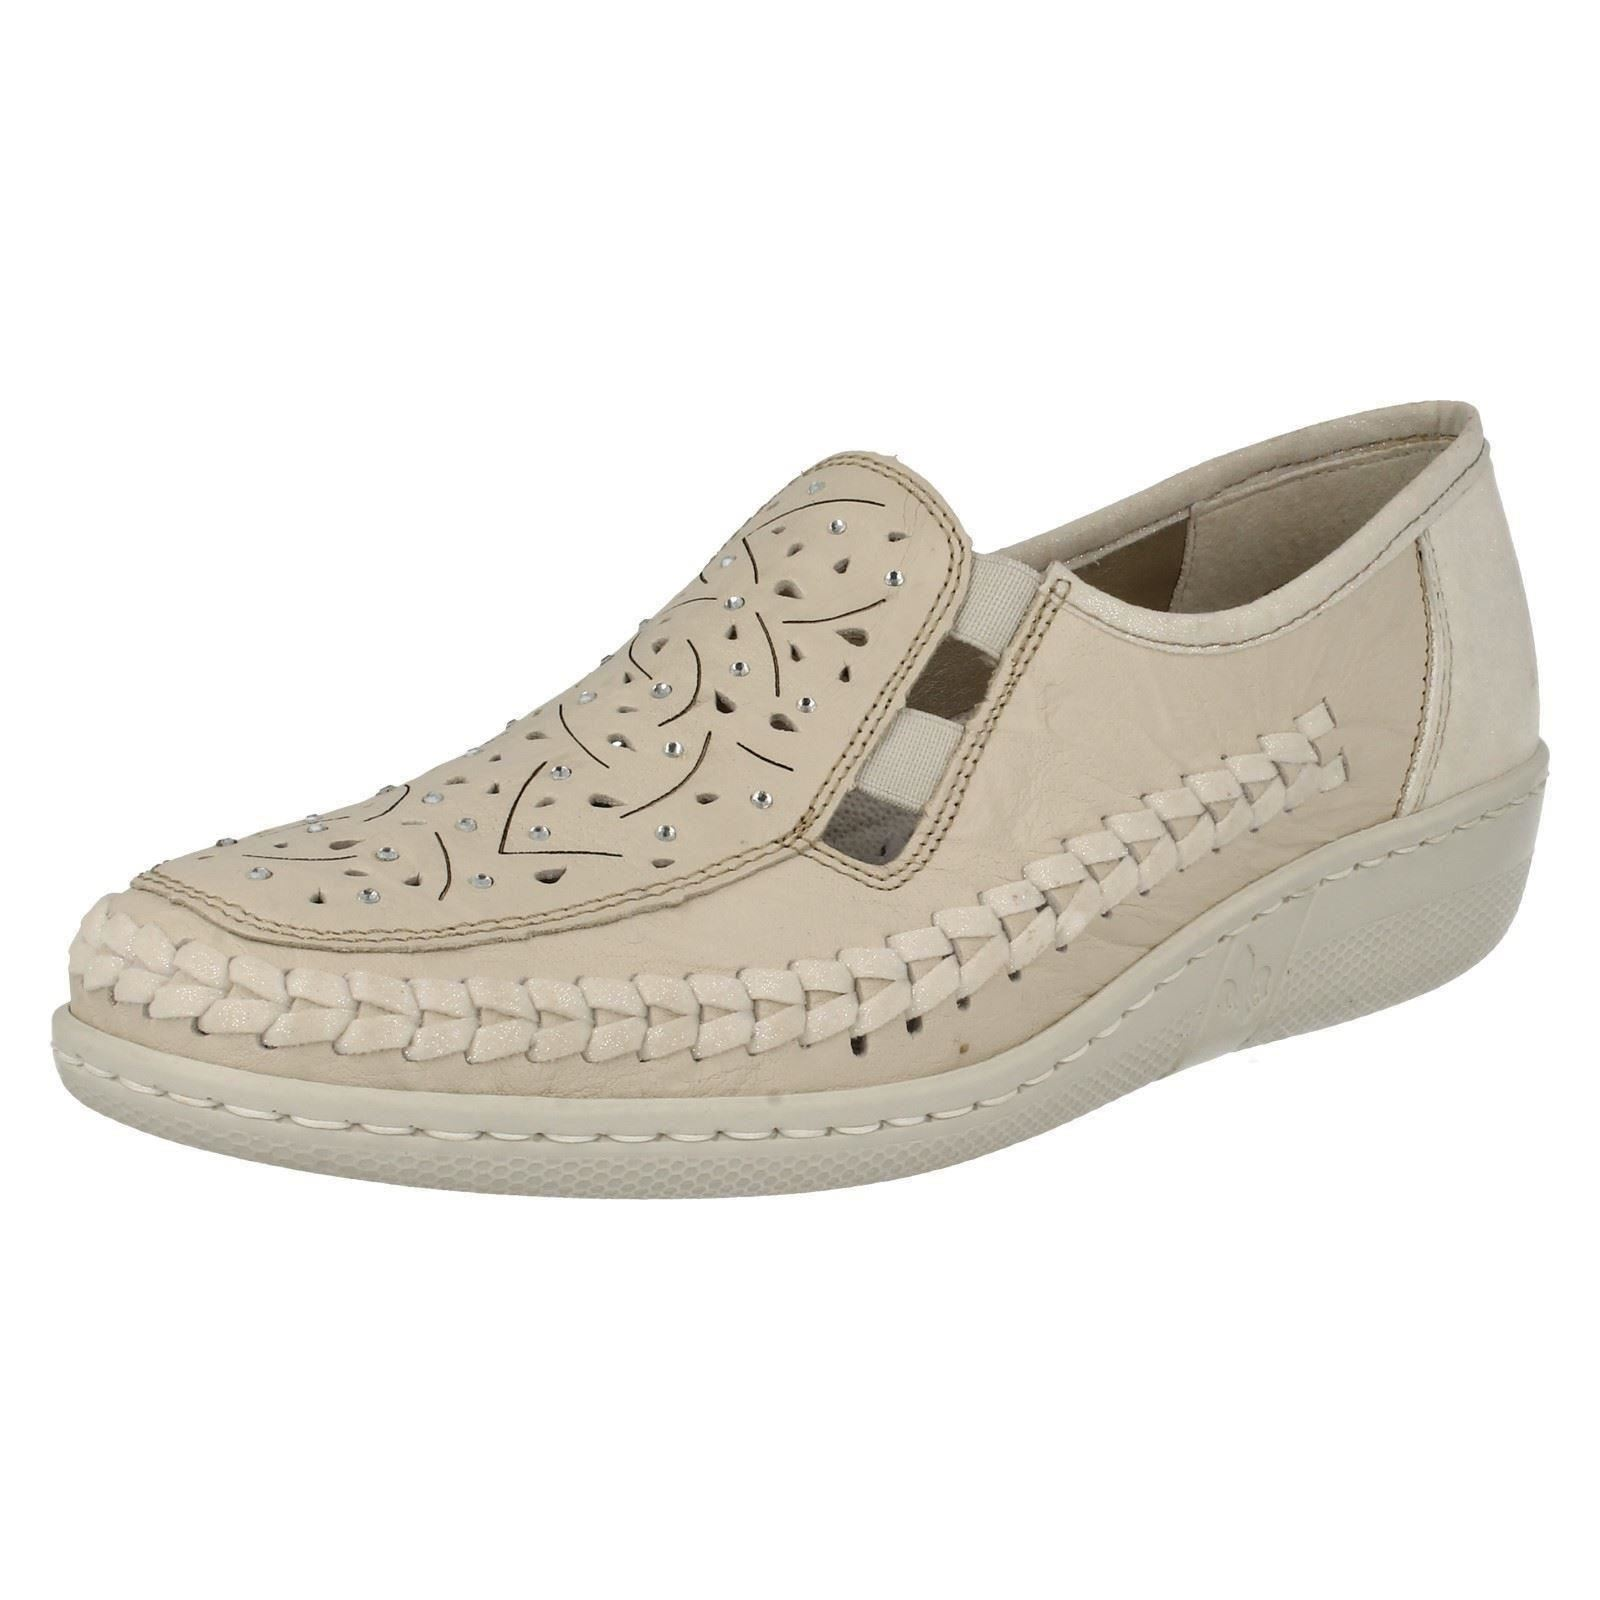 rieker shoes ladies-rieker-antistress-slip-on-casual-shoes-039- vgfmhbf